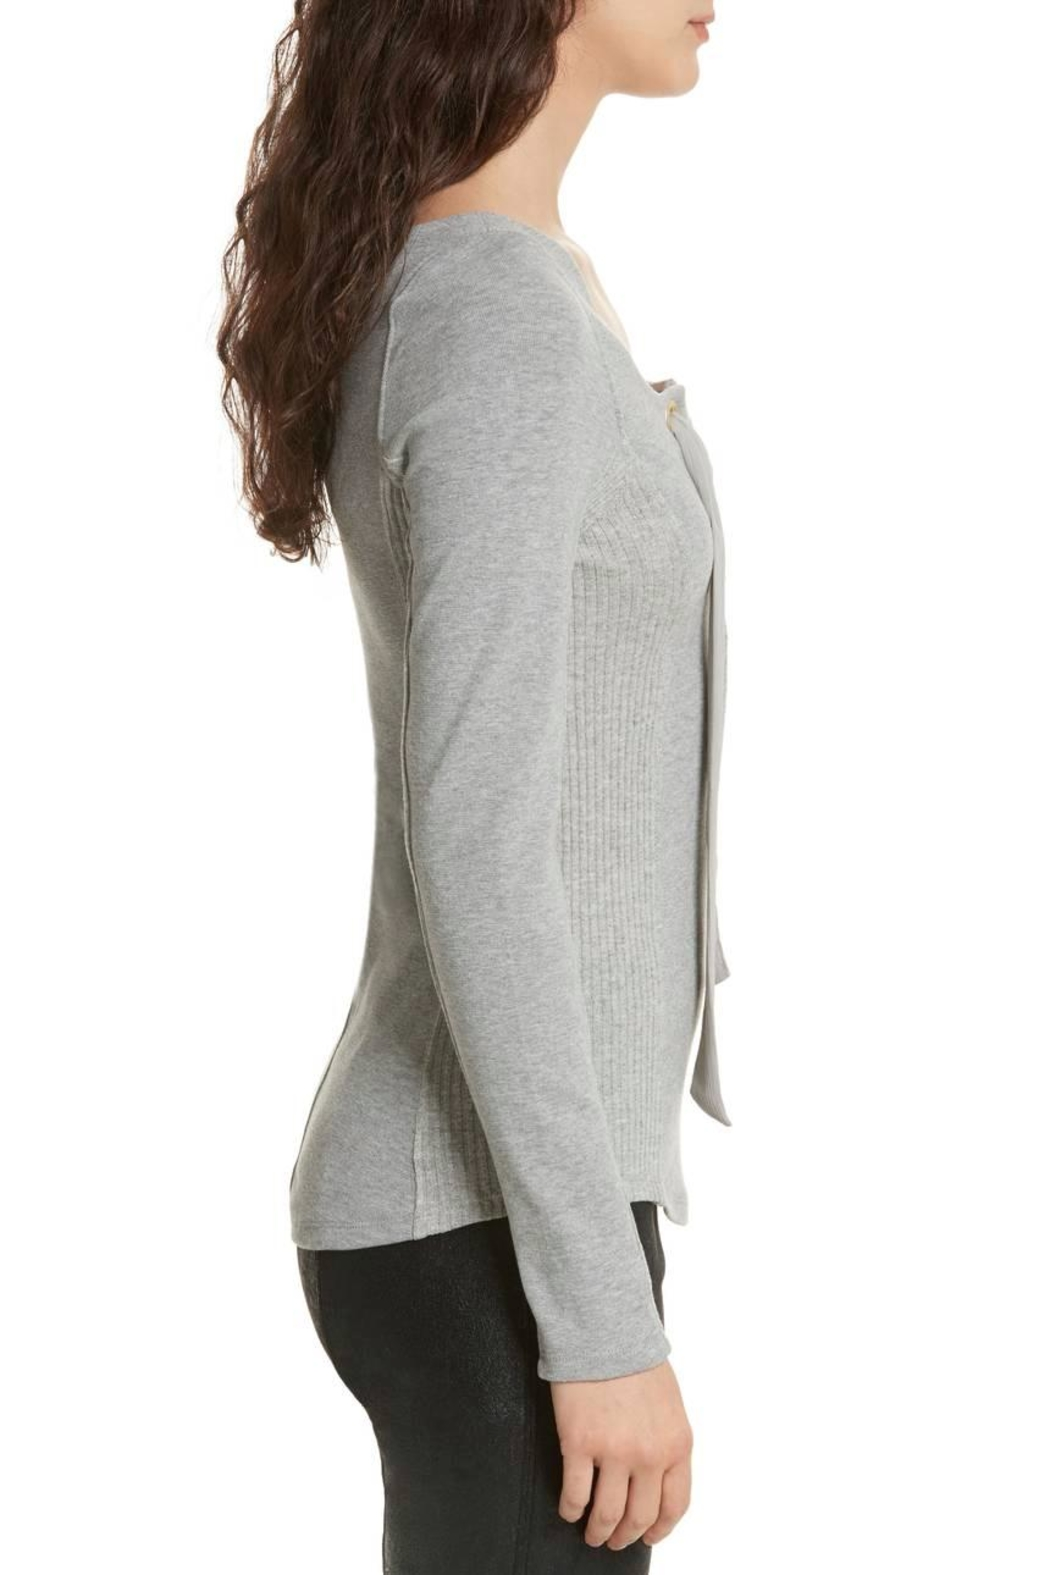 Free People Looking Back Top - Front Full Image